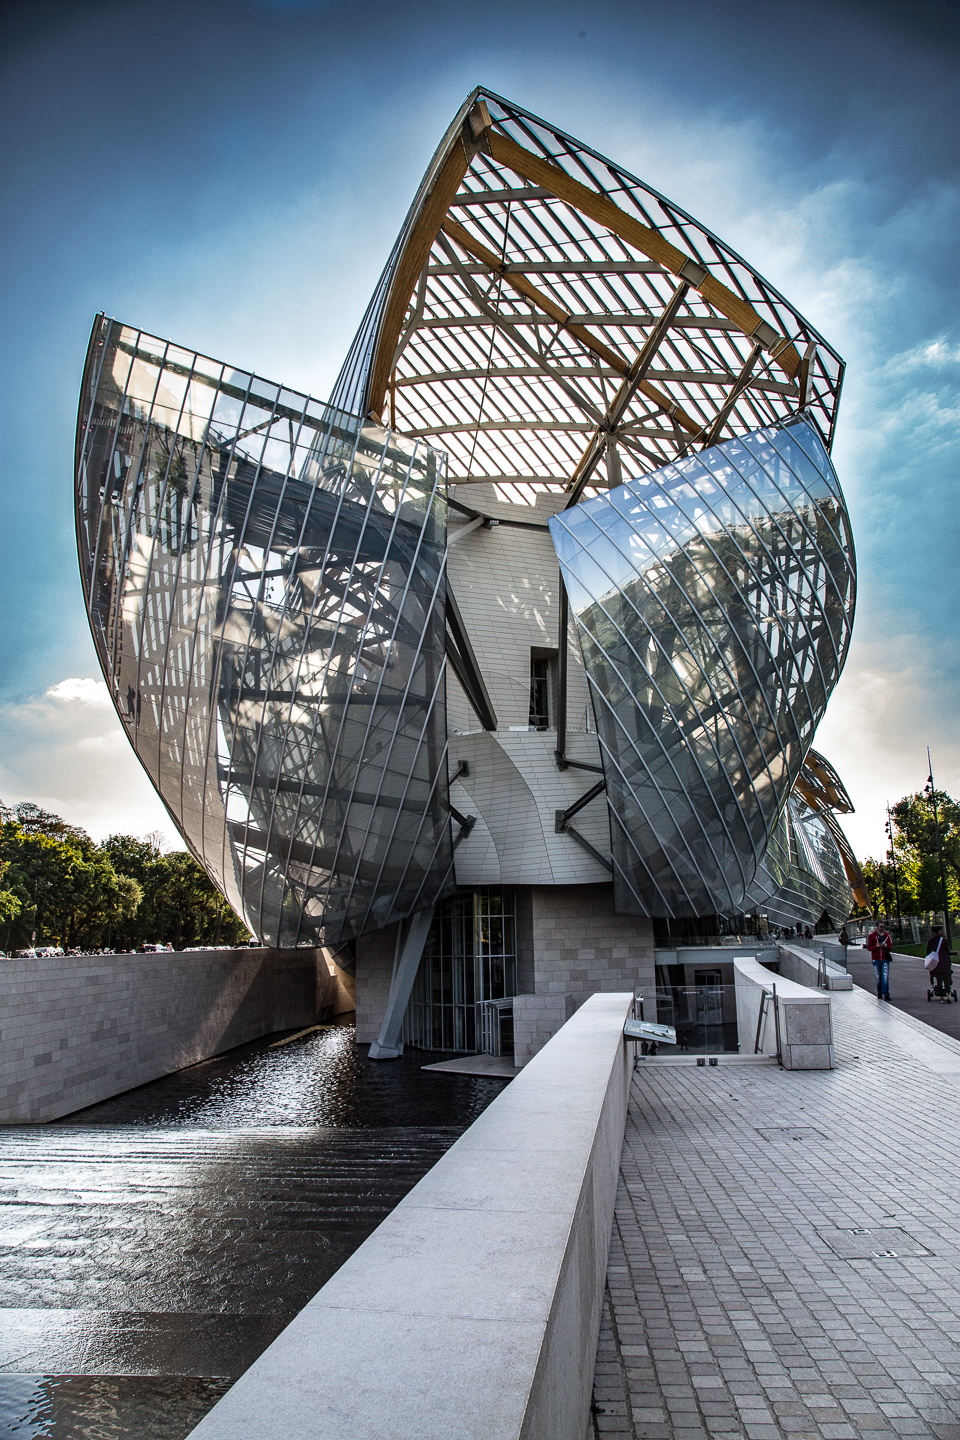 Exterior of Foundation Louis Vuitton, Paris. Designed by Frank Gehry.